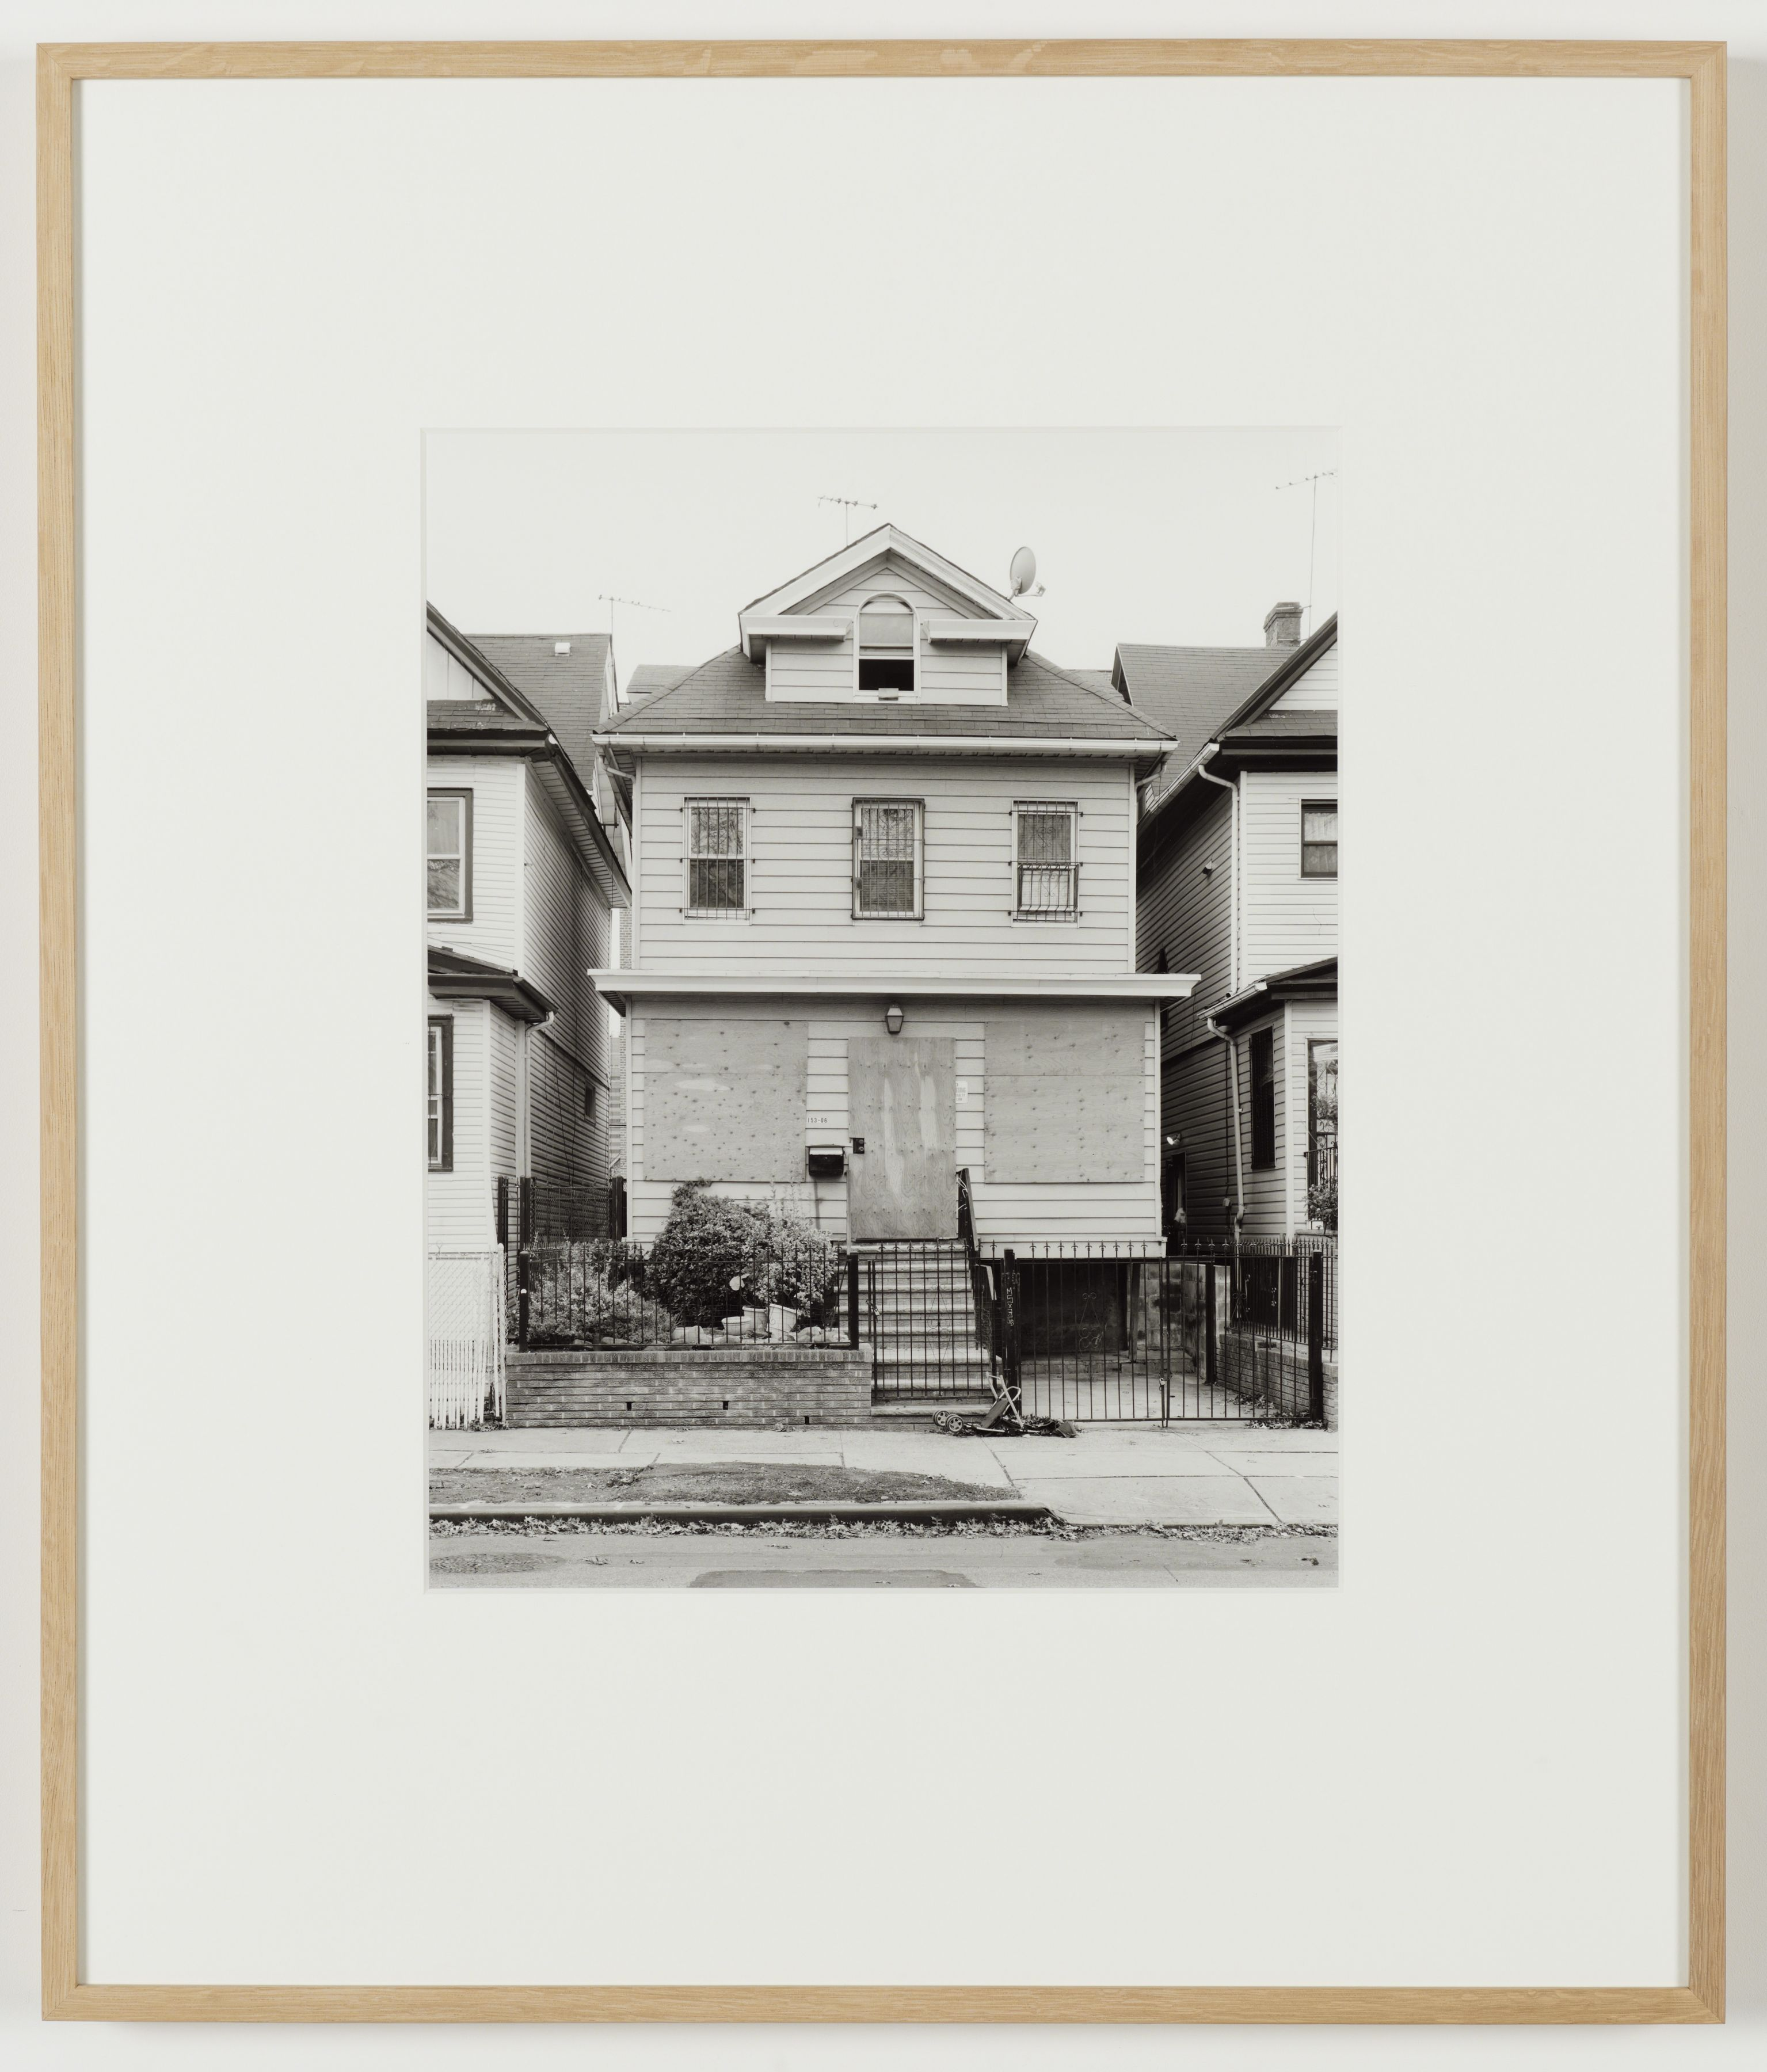 Joachim Koester, Some Boarded Up Houses, Queens #5, 2009-2013, Silver gelatin print, 27 x  22 5/8 inches (68.6 x 57.5 cm)